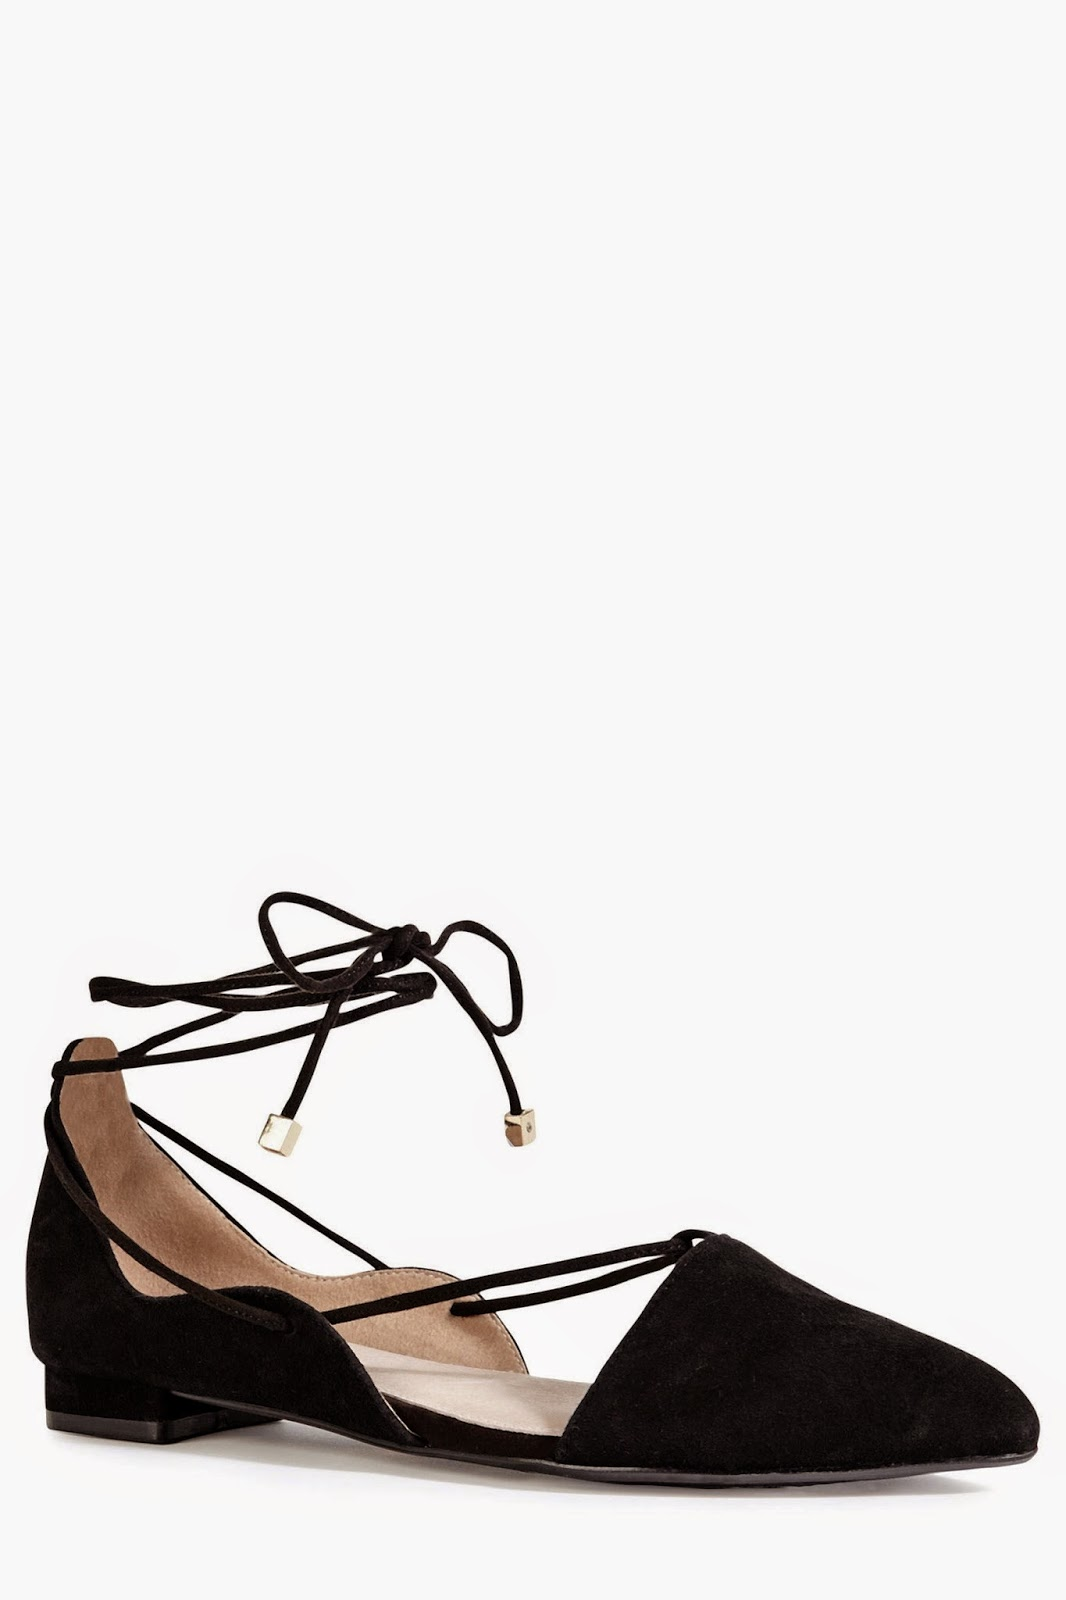 next black flats with lace tie, next black shoes with tie, black flats with ankle tie,